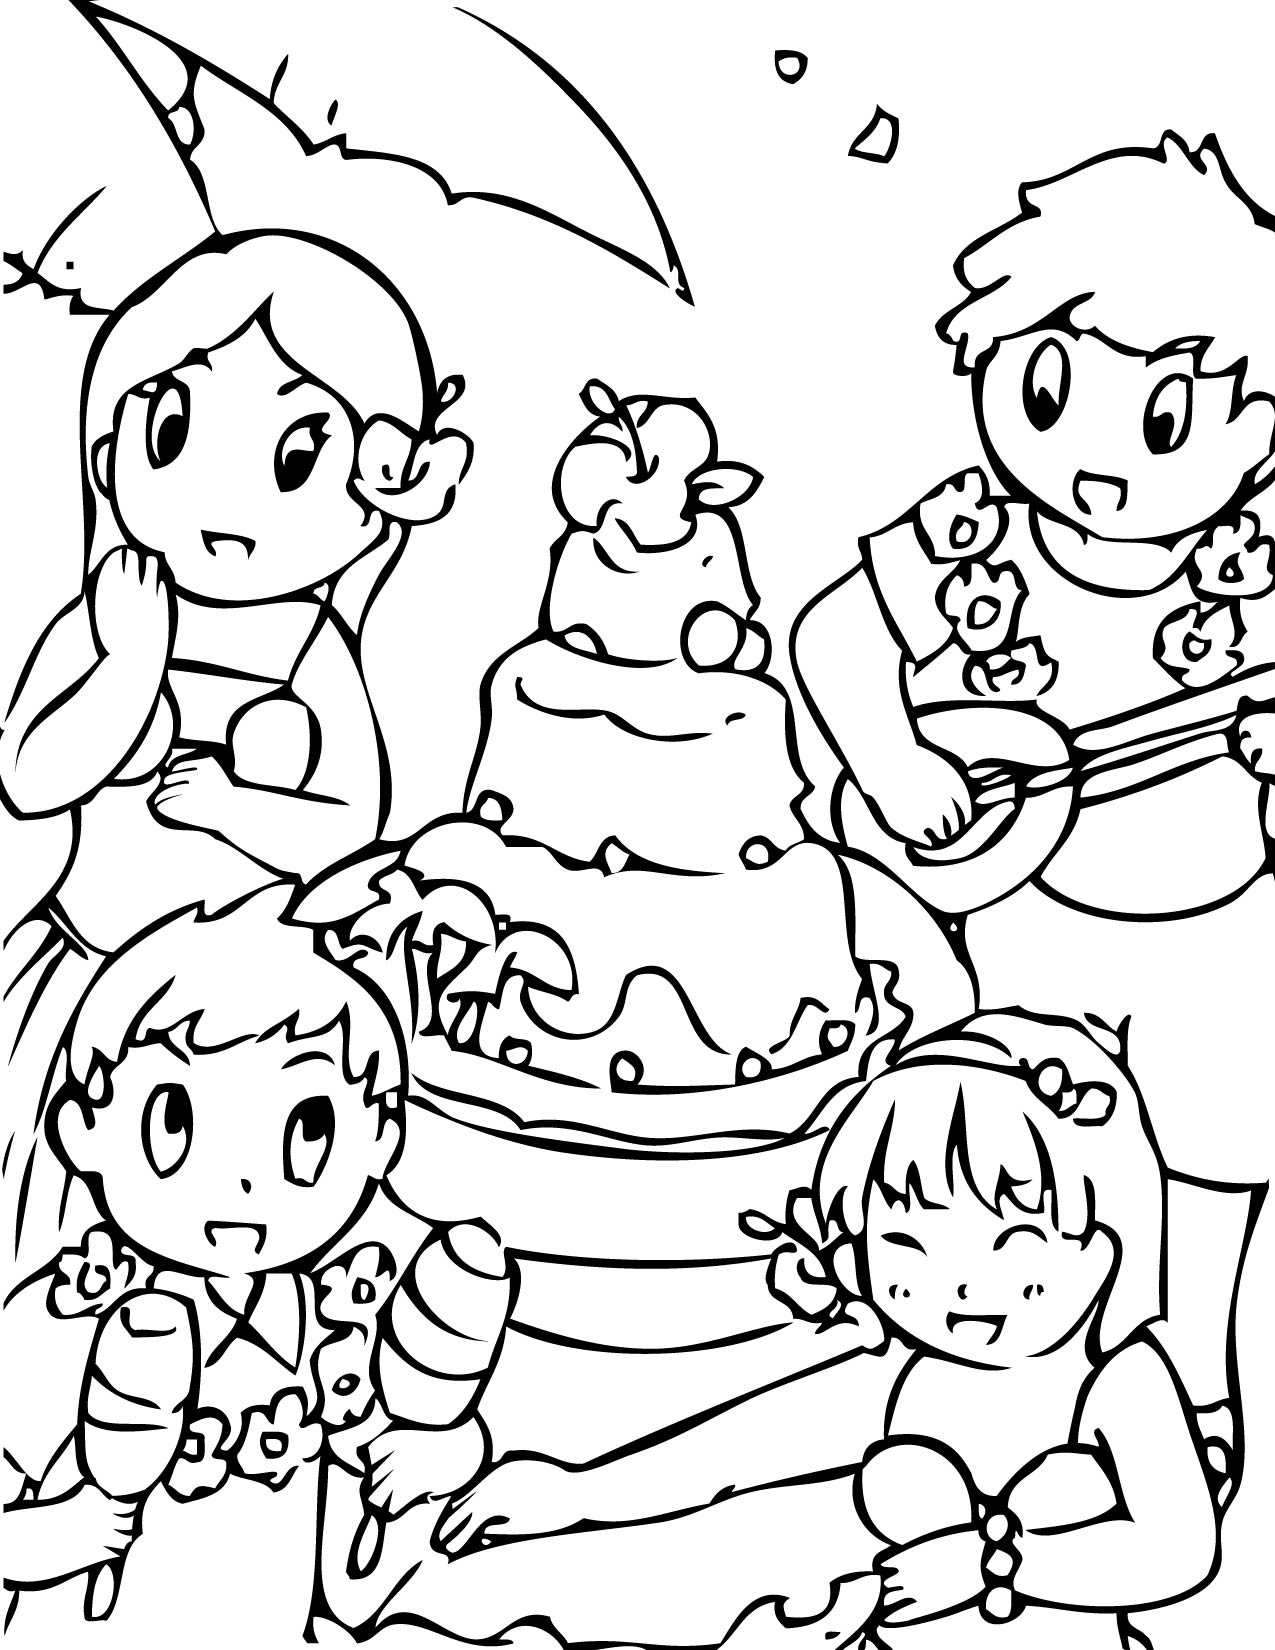 Luau Coloring Page Handipoints